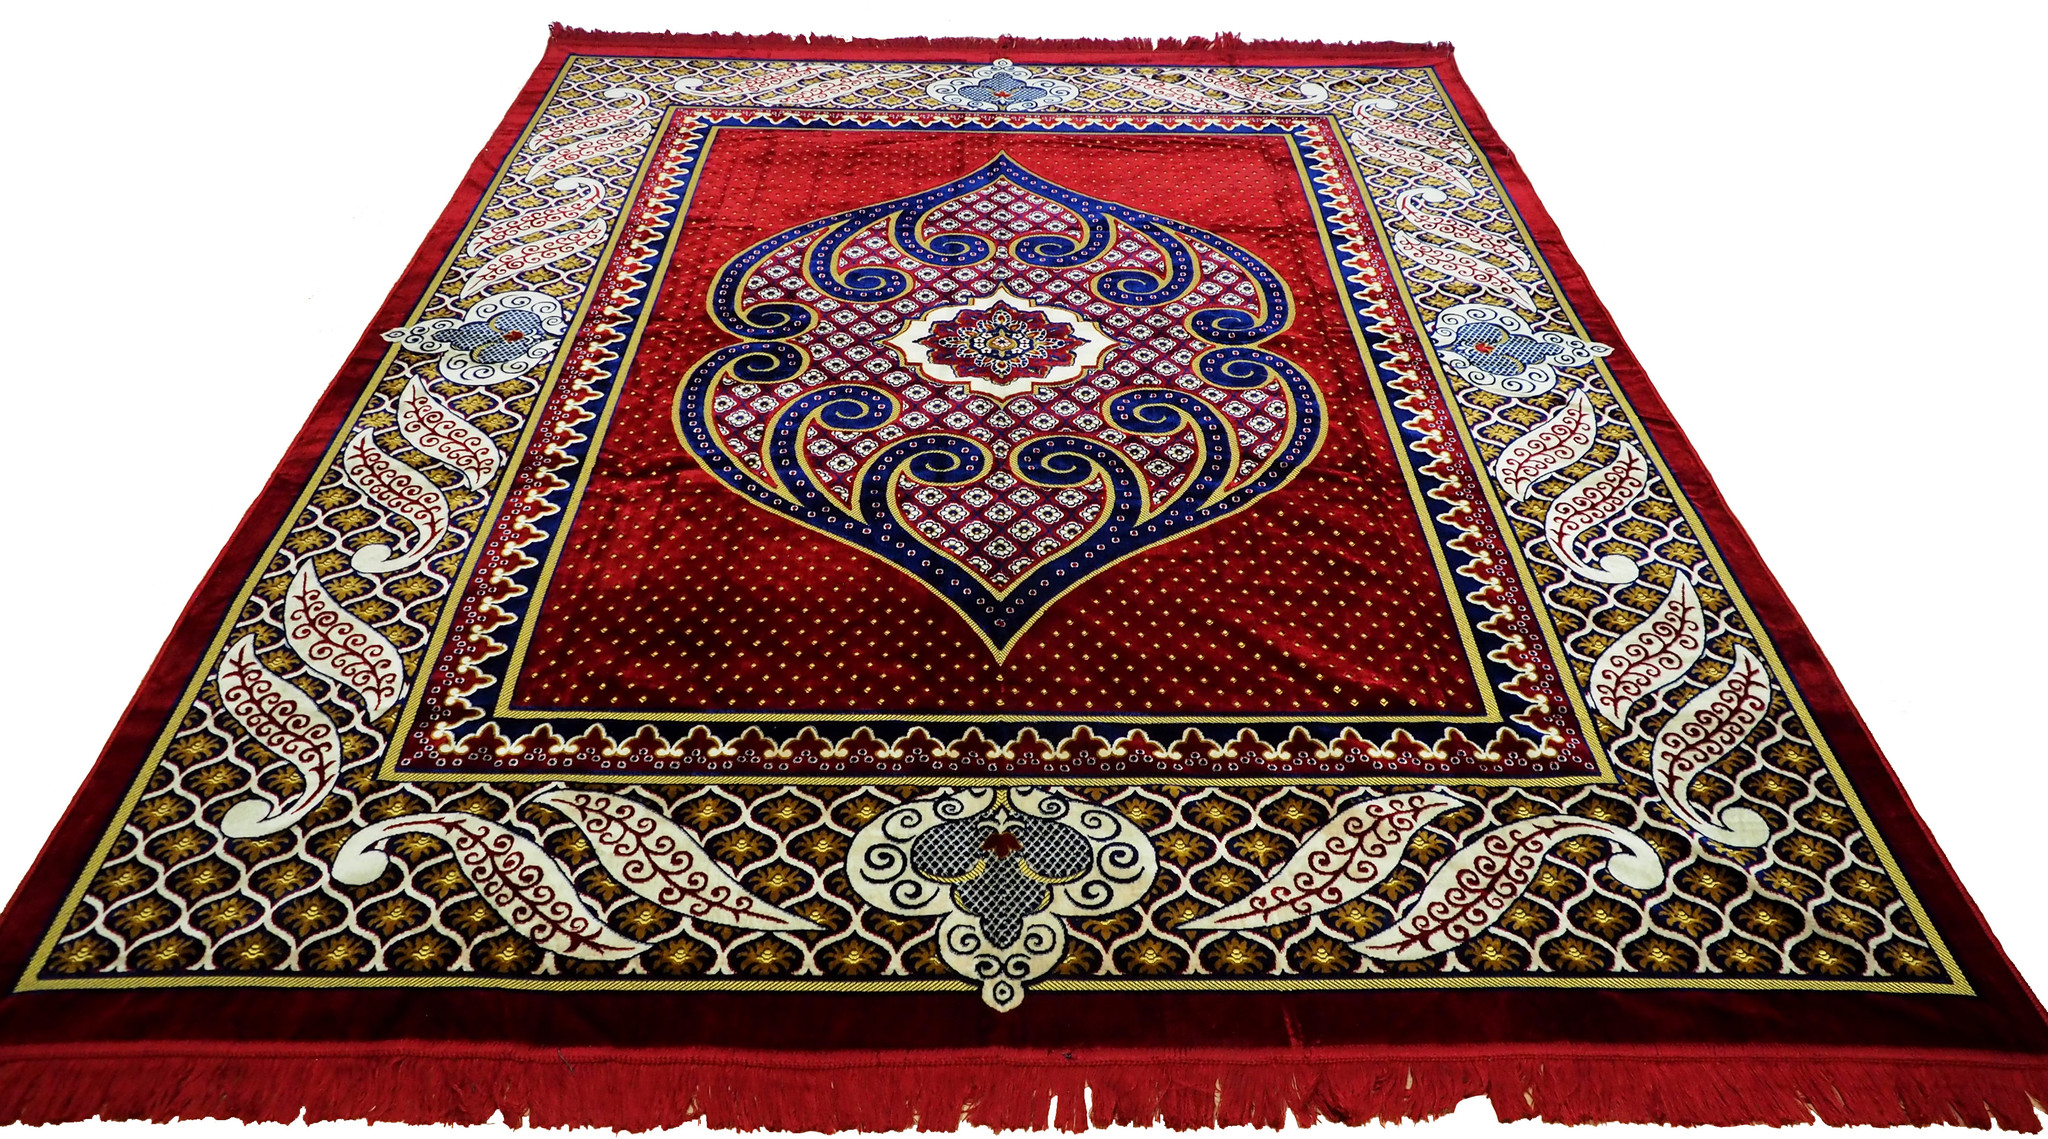 250x200 cm velvety Carpet rug for oriental Sitting area Arabic majlis nomadic bedouin floor seating floor 1001-night  machine manufactured